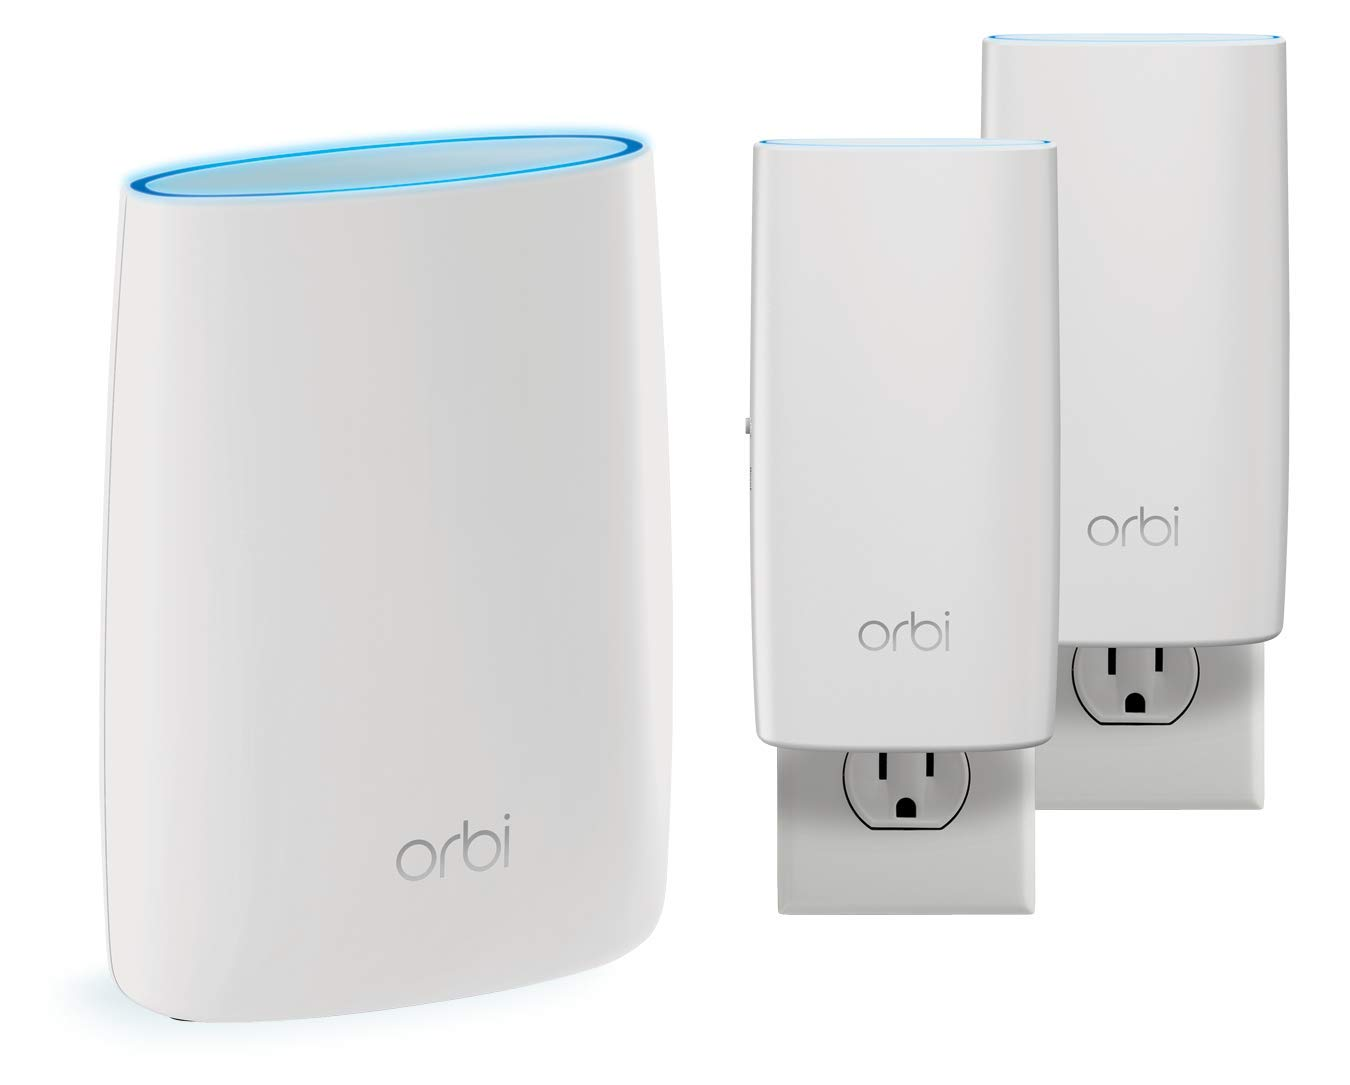 NETGEAR Orbi Whole Home Mesh WiFi System - Tri-Band, Up to 5,500 sqft,  AC3000 (RBK52W)